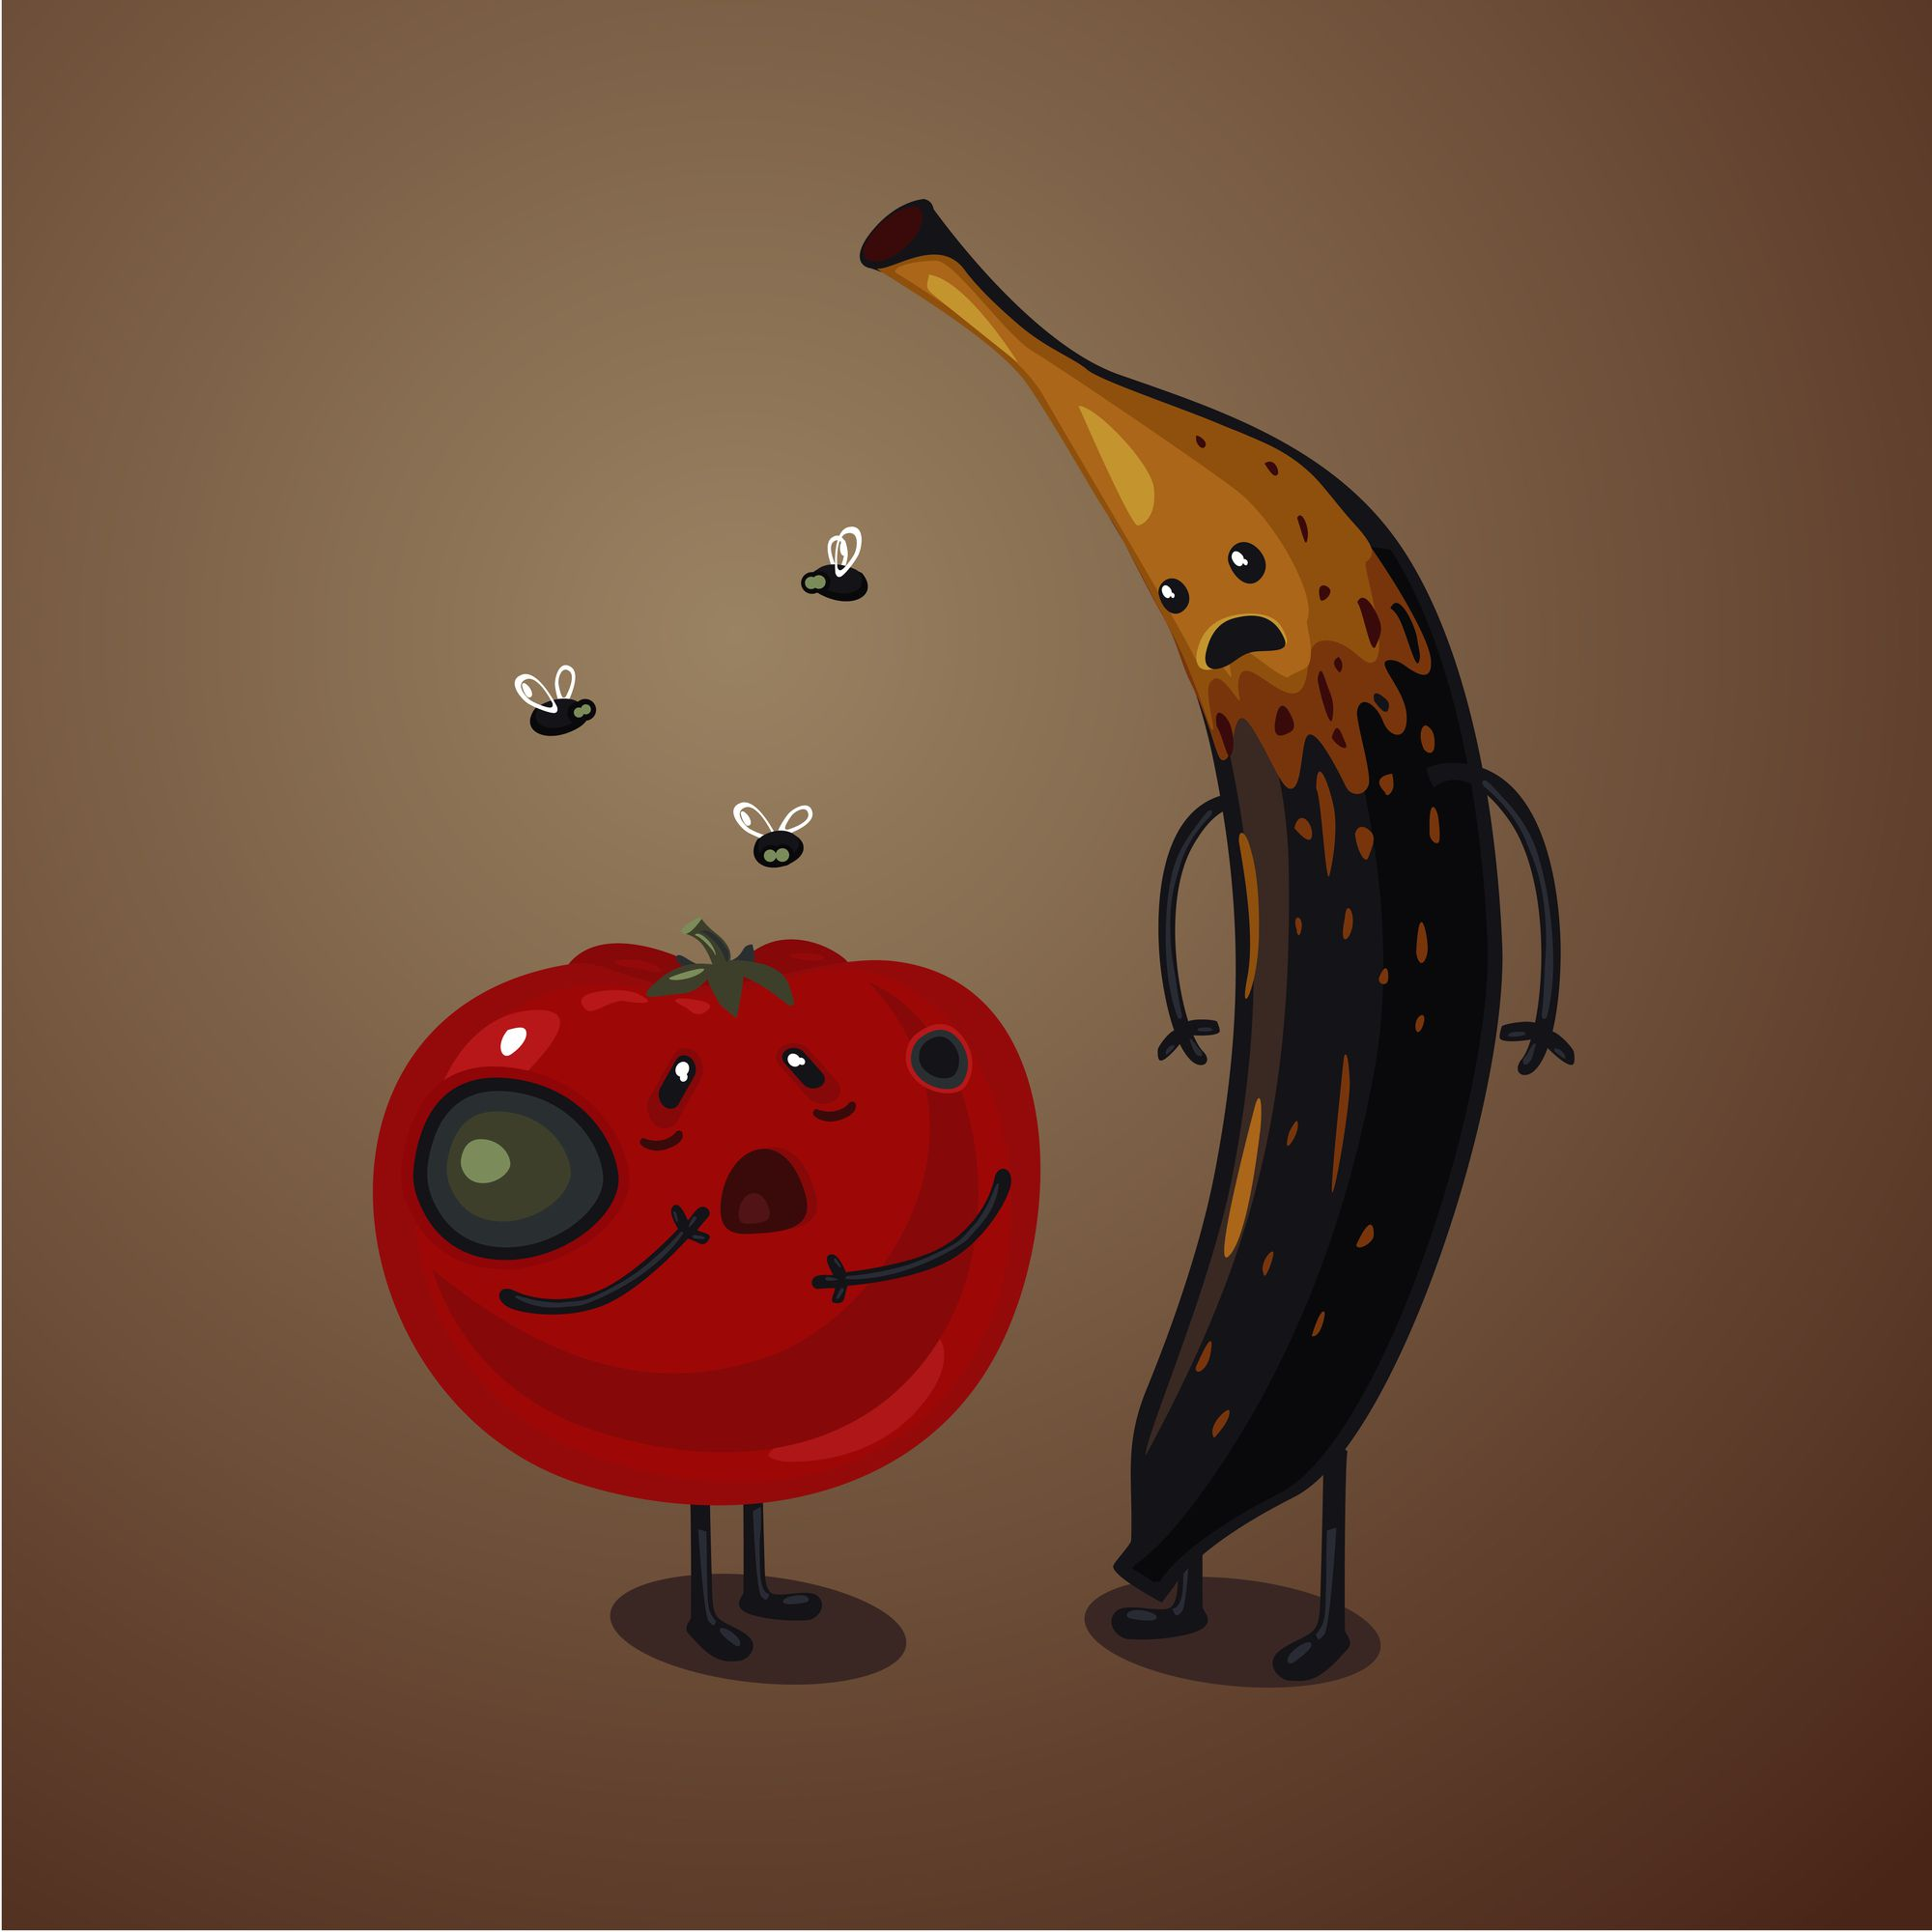 a rotten apple and banana surrounded by fruit flies